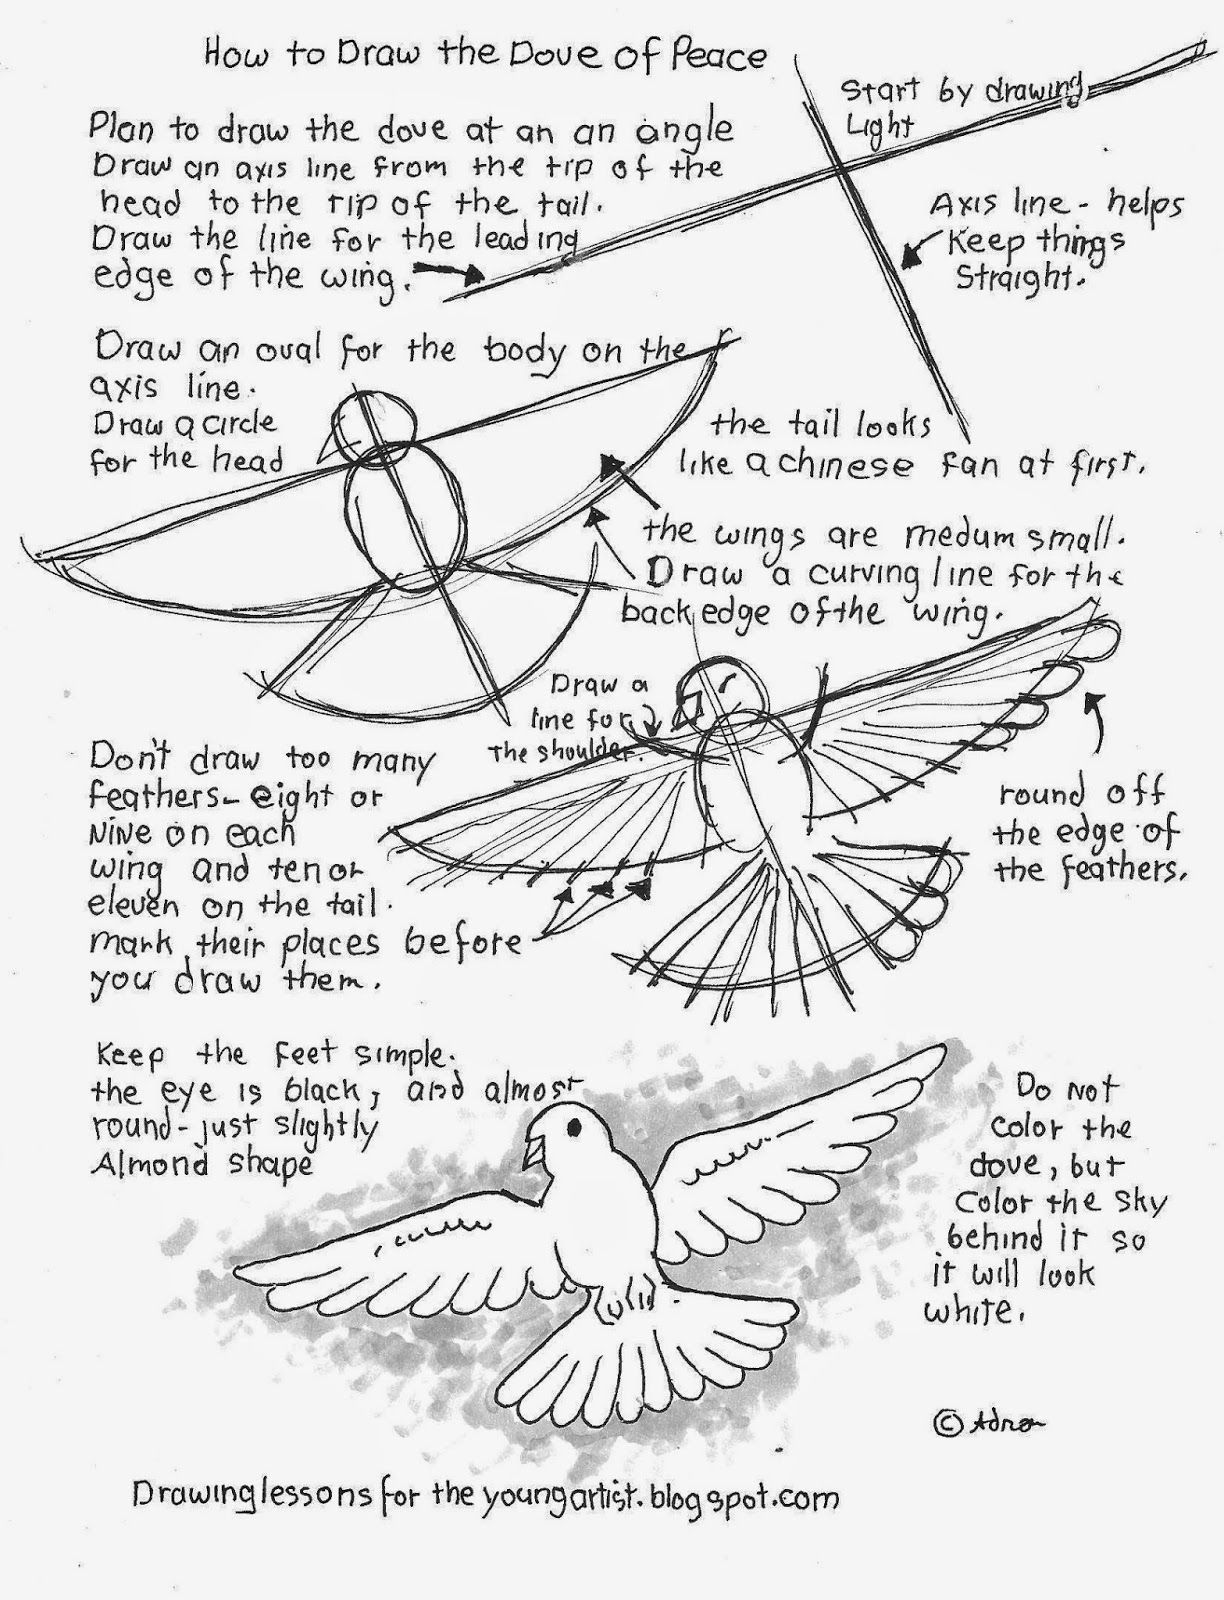 How to draw the dove of peace worksheet see more at my blog http – How to Draw Worksheets